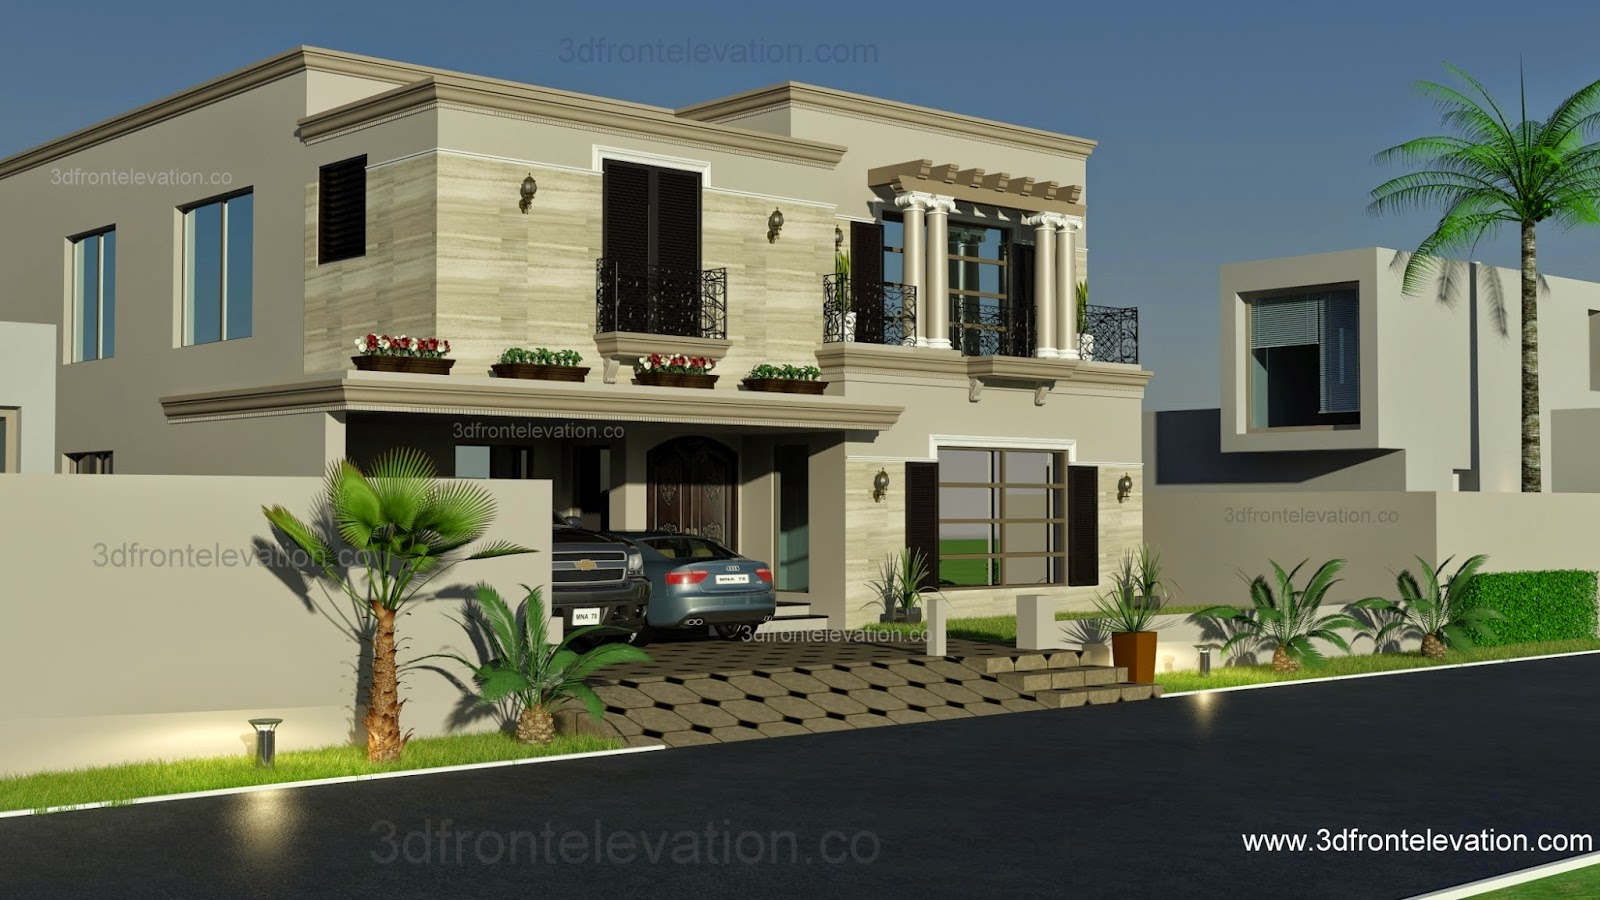 Home Design In Pakistan home design in pakistan latest pakistan home design home design pakistan karachi 1 Kanal Spanish House Design Plan Dha Lahorepakistan